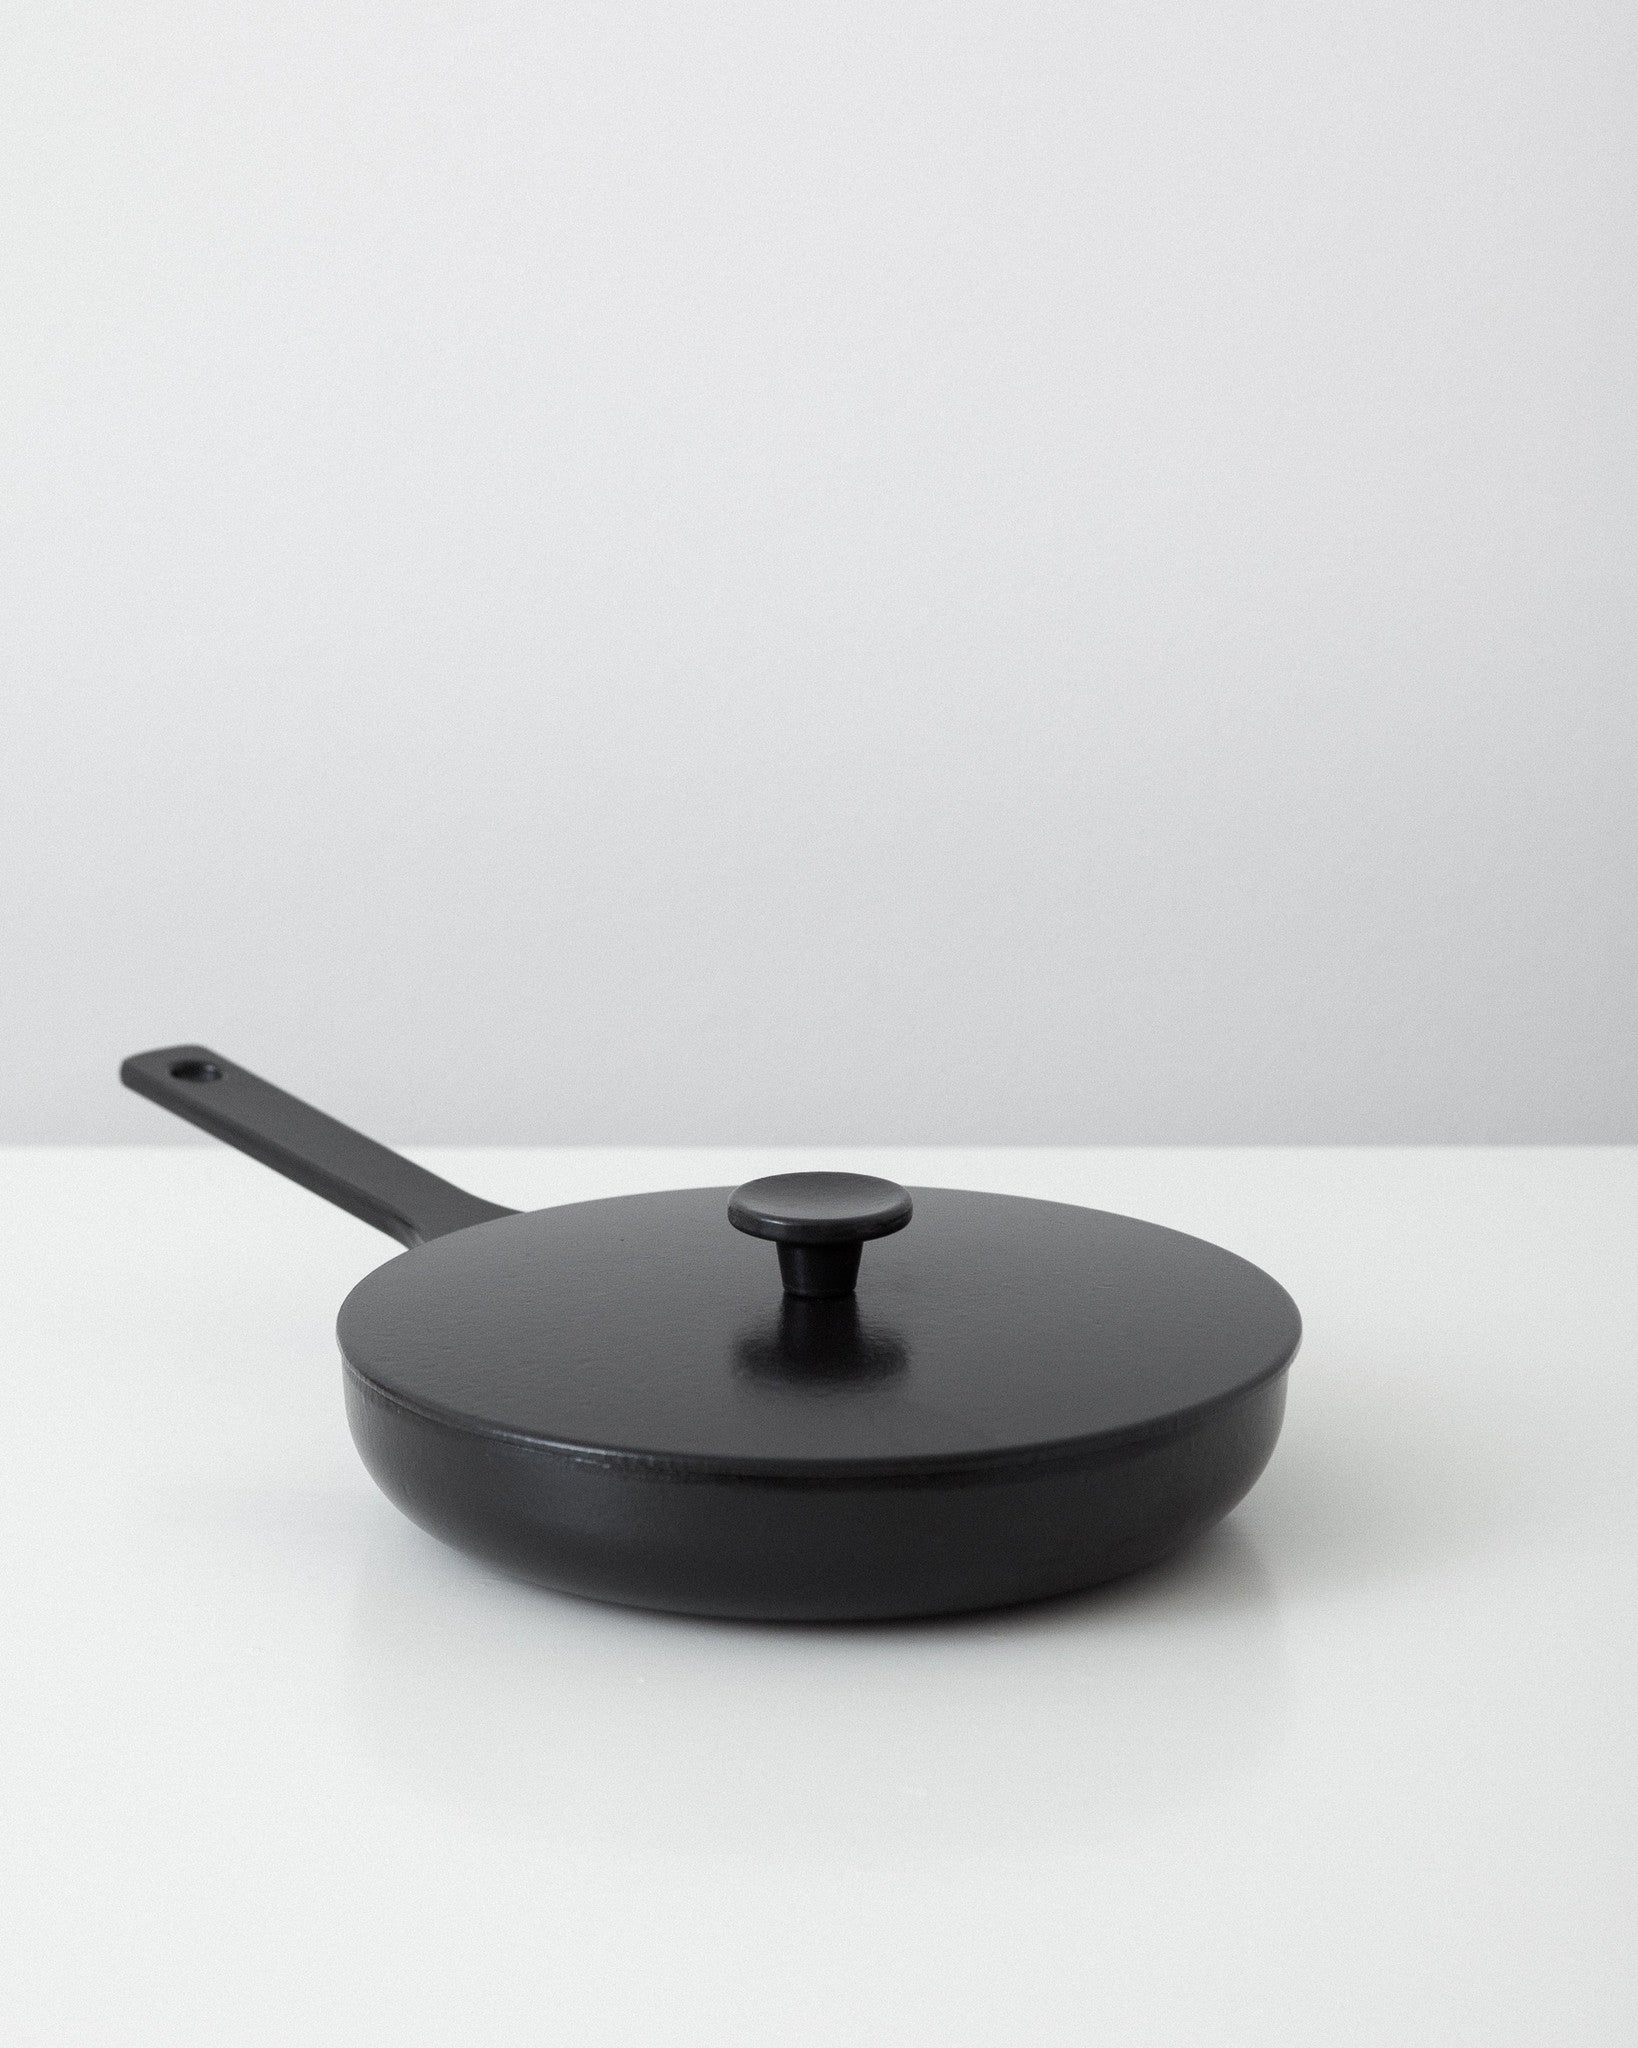 Crane Cookwear - C3 Frying Pan - Black